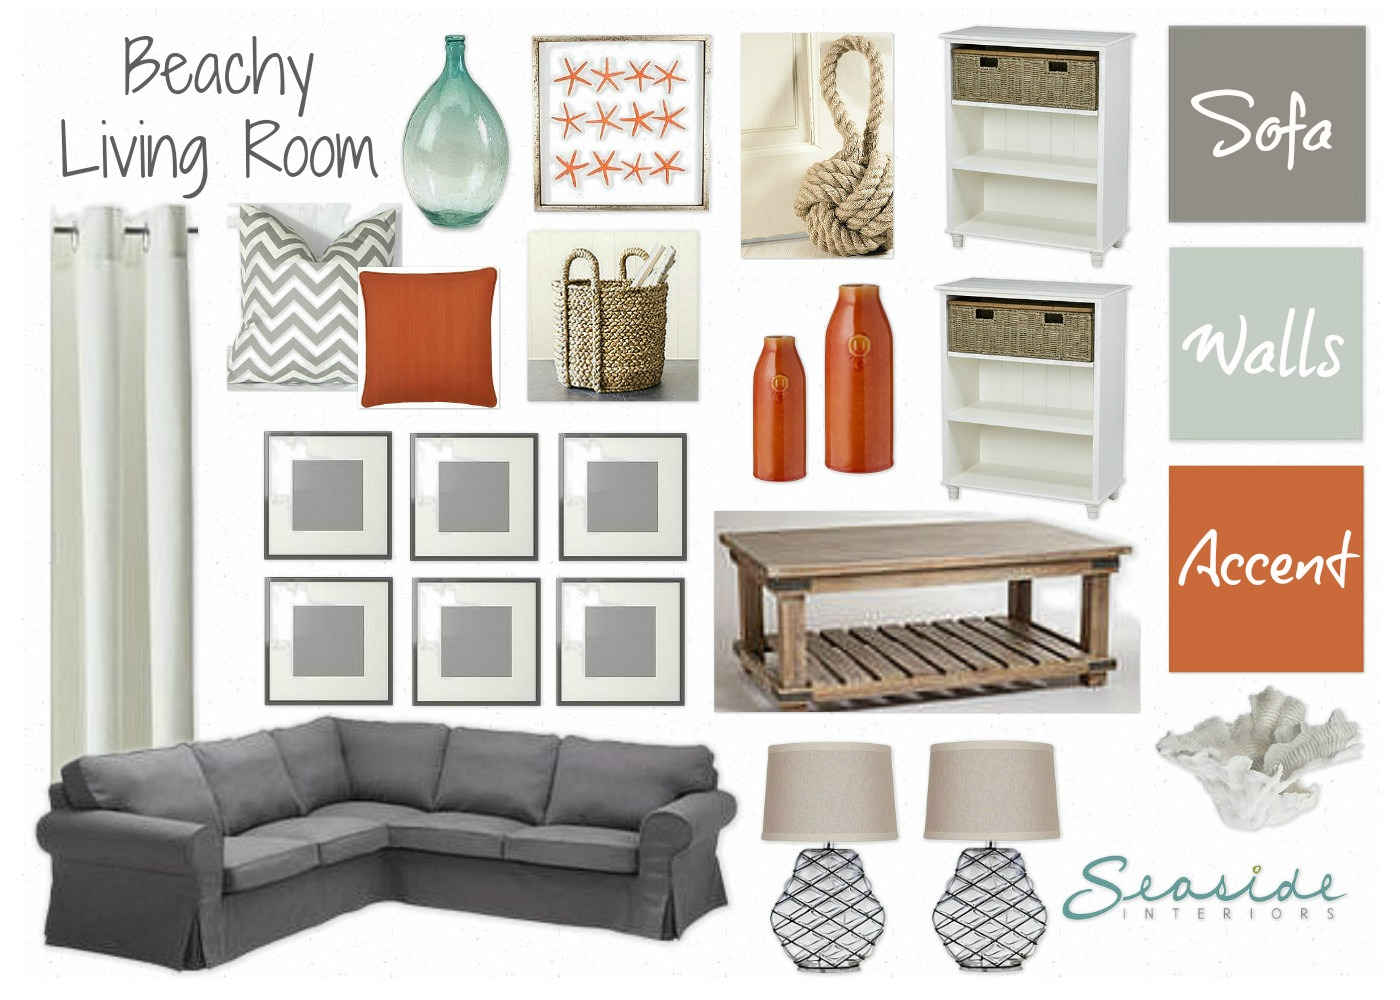 seaside interiors beachy living room with grays and orange. Black Bedroom Furniture Sets. Home Design Ideas